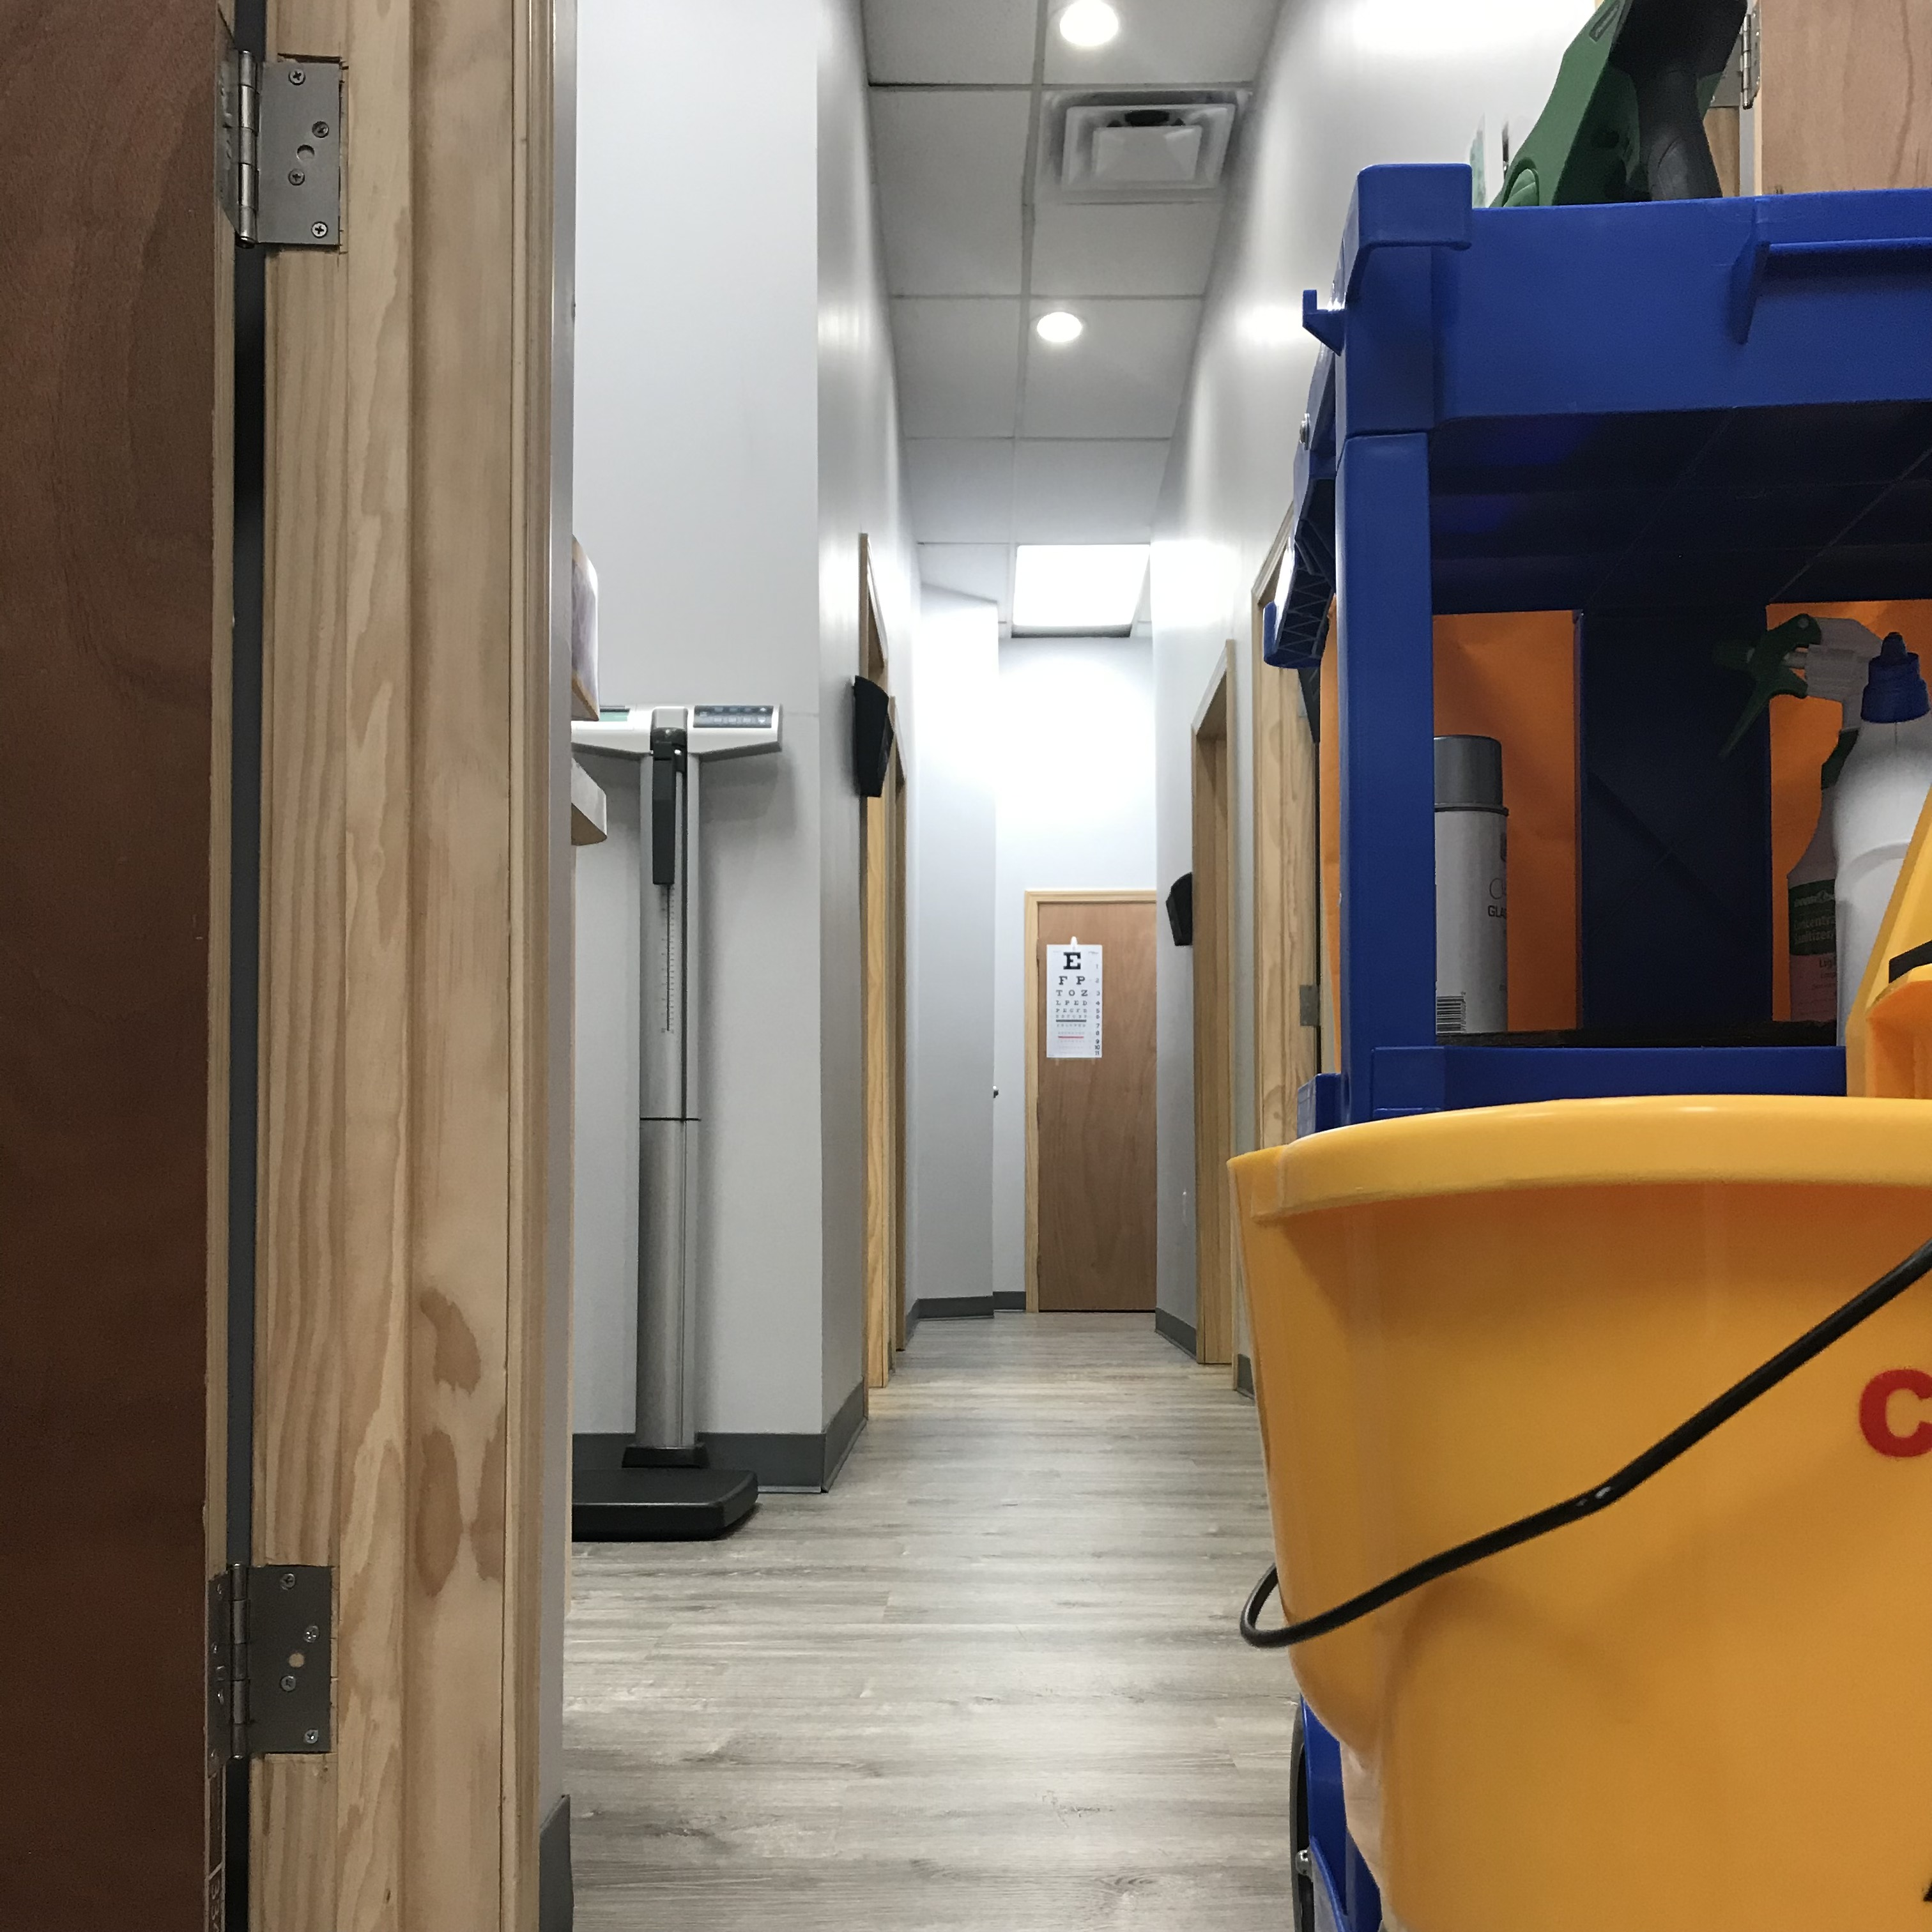 A Yellow Kord janitorial cleaning cart in the hallway of a medical office